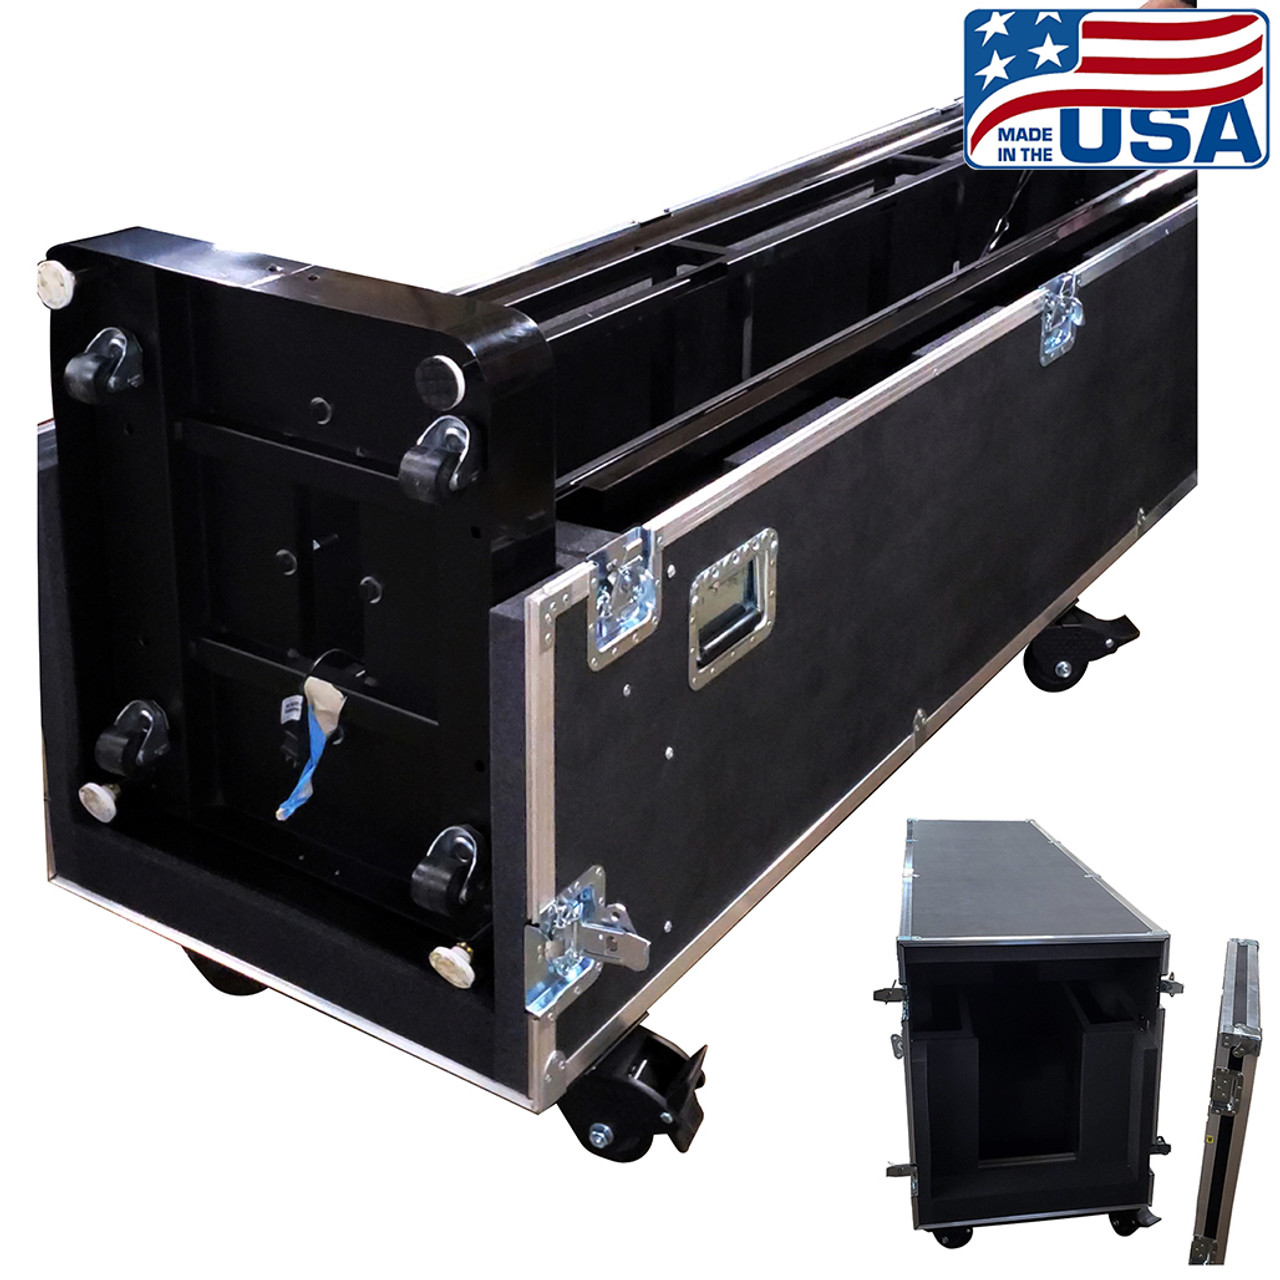 Shipping ATA Travel Case for Peerless KIP586-2LG double sided stand